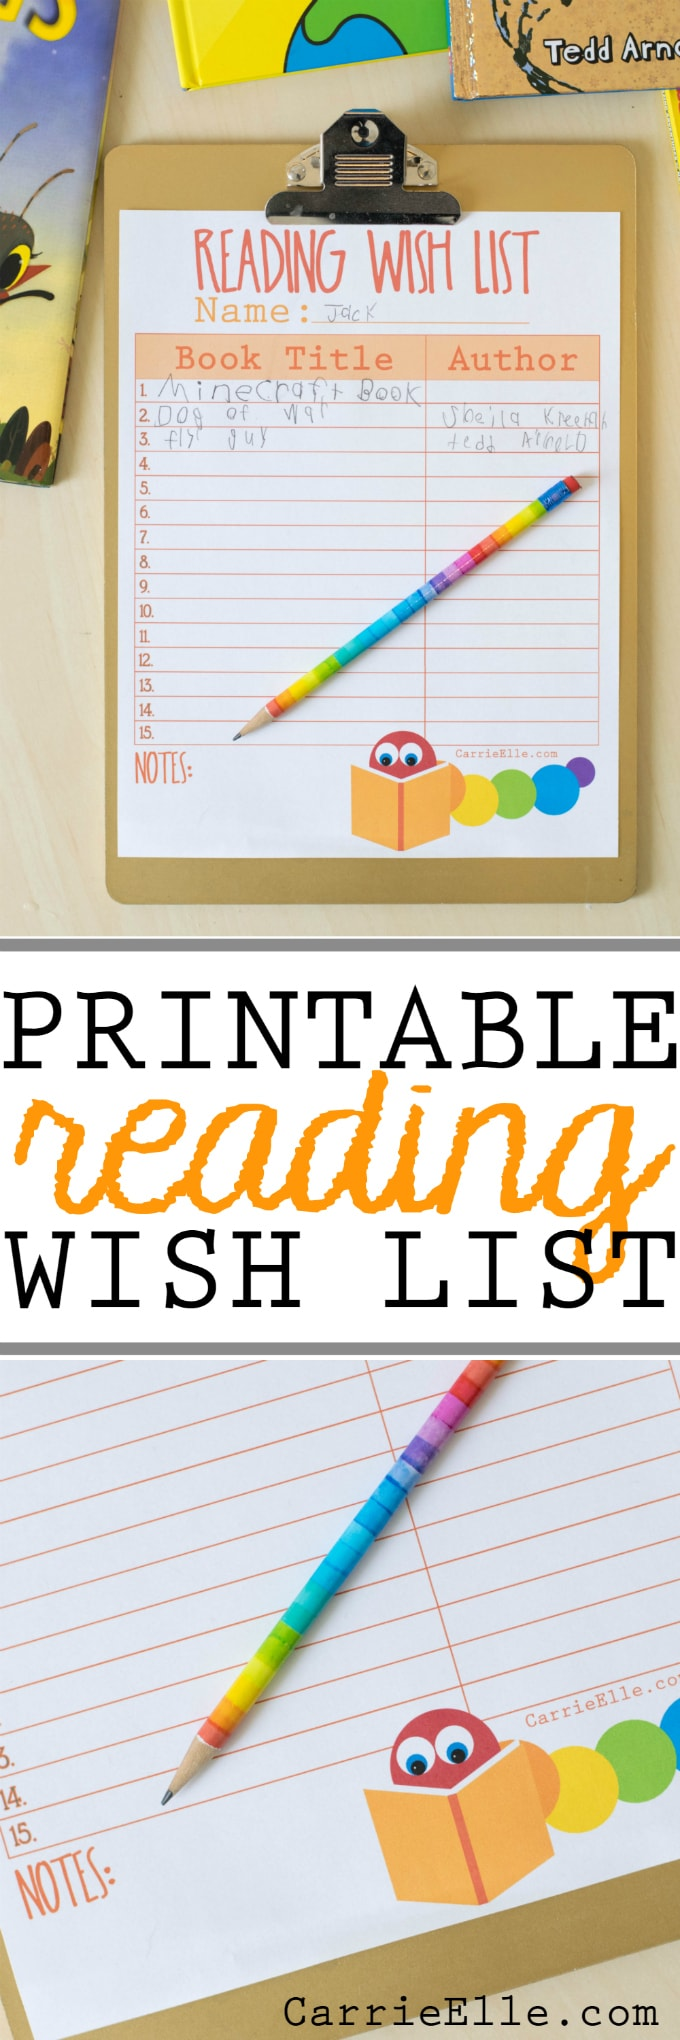 Printable Reading Wish List for Kids